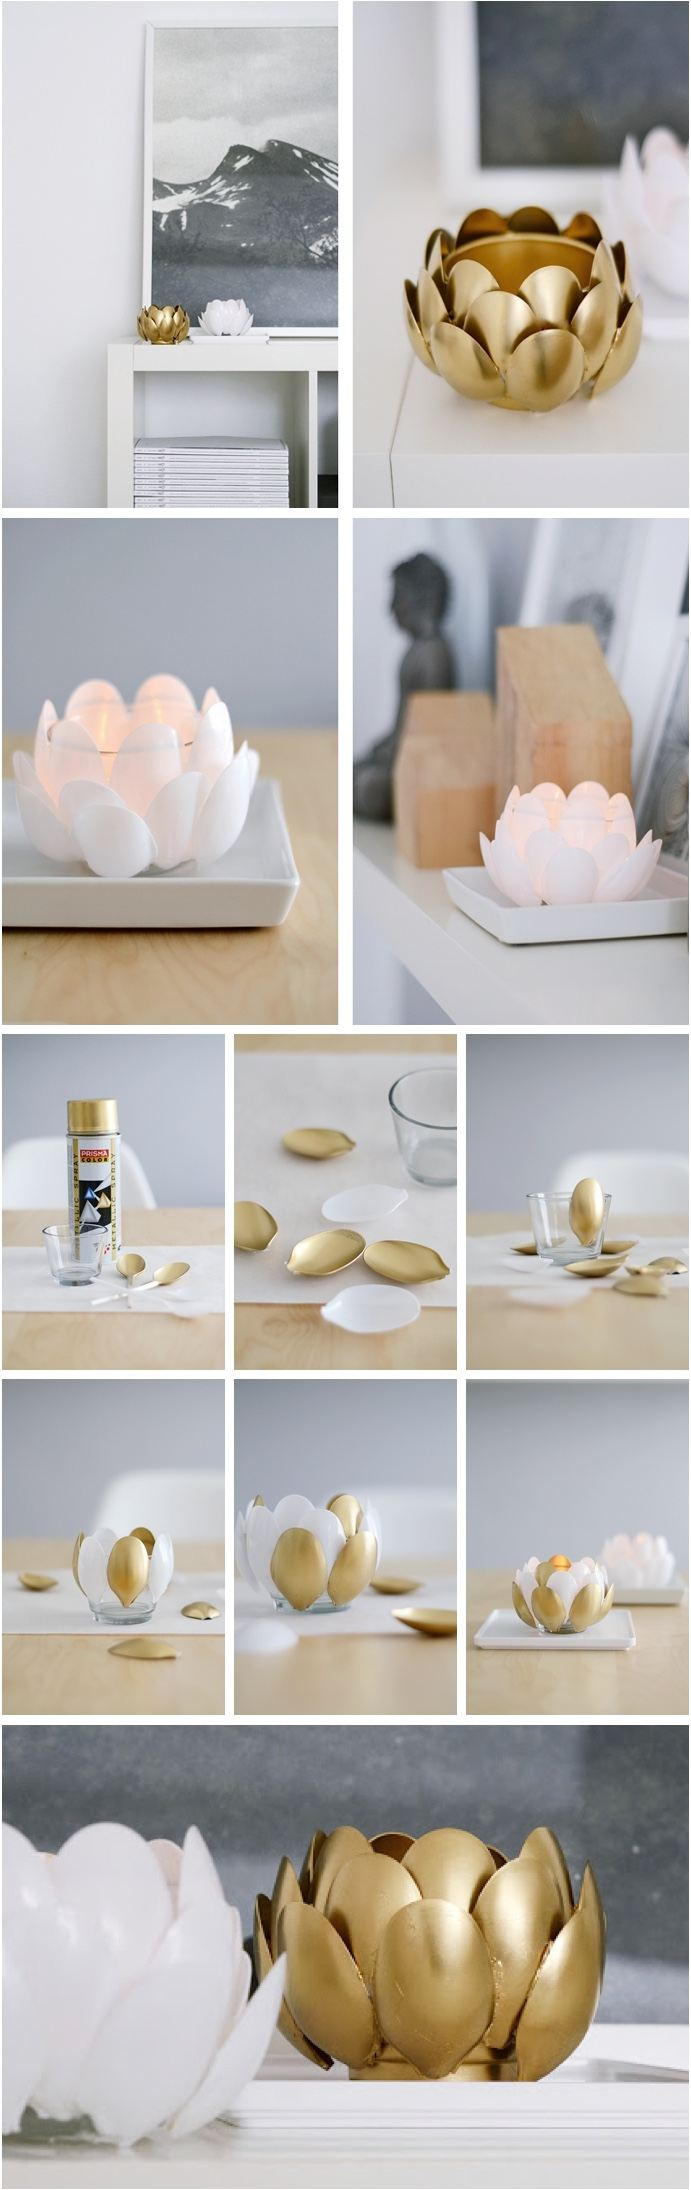 DIY Water Lilies - plastic spoon candle holder